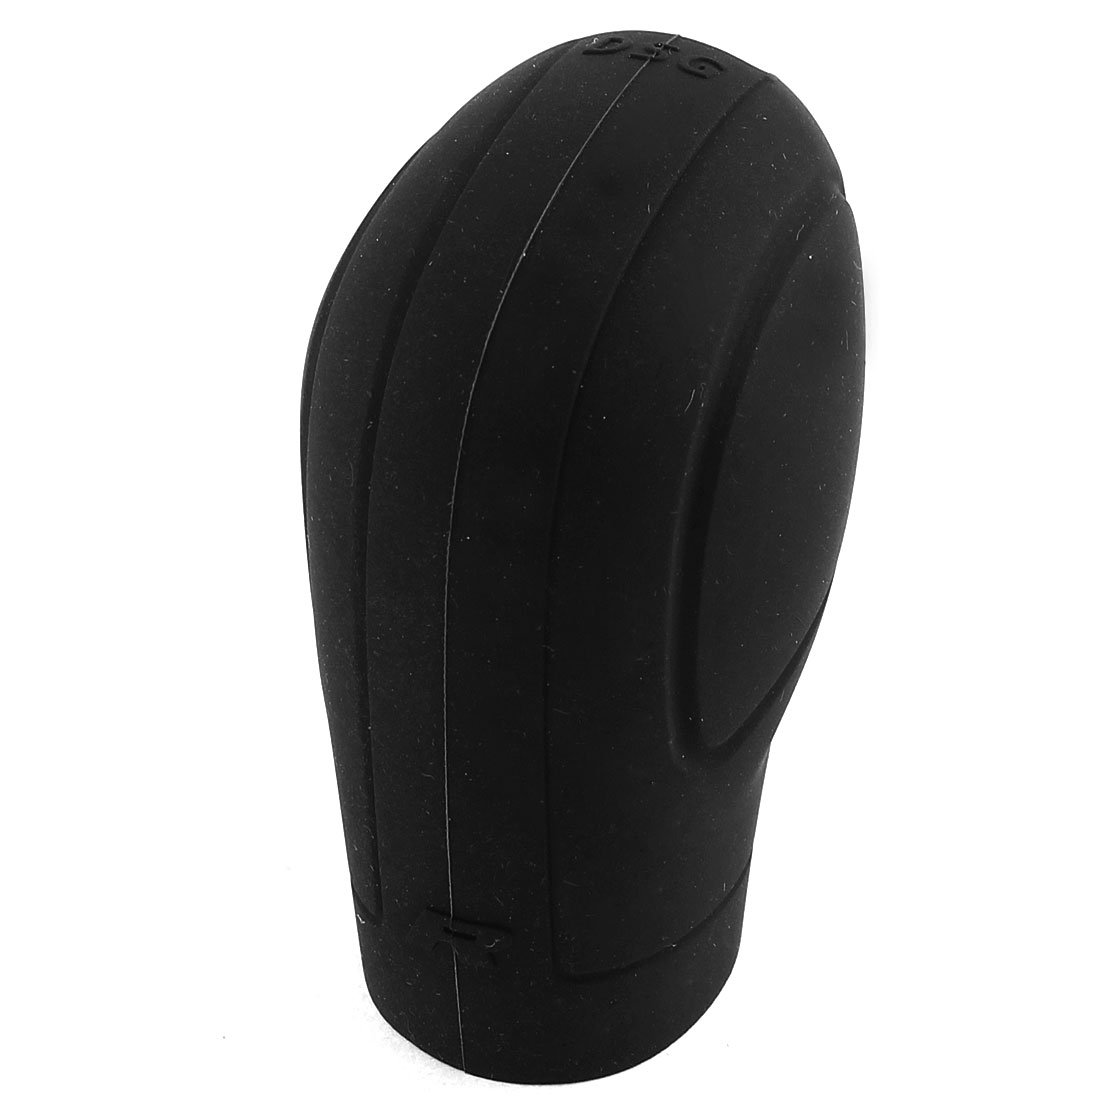 Lanlan Soft Silicone Nonslip Car Shift Knob Gear Stick Cover Protector with Trepanning Design - Black